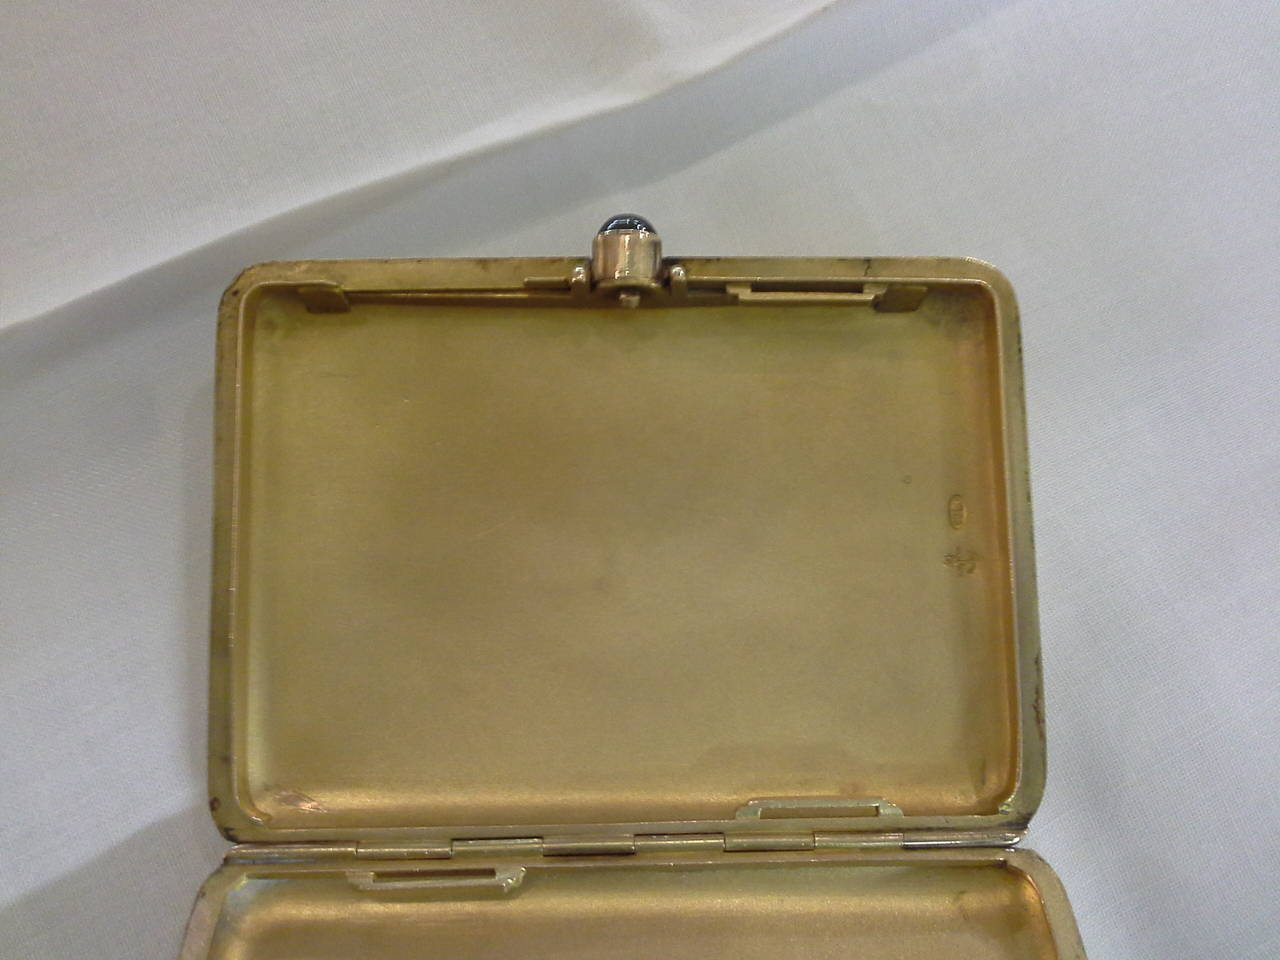 Russian Cigarette Case, .56-Mark, 14k Rose Gold and Sapphire, by Michael Perchin In Good Condition For Sale In Ottawa, Ontario